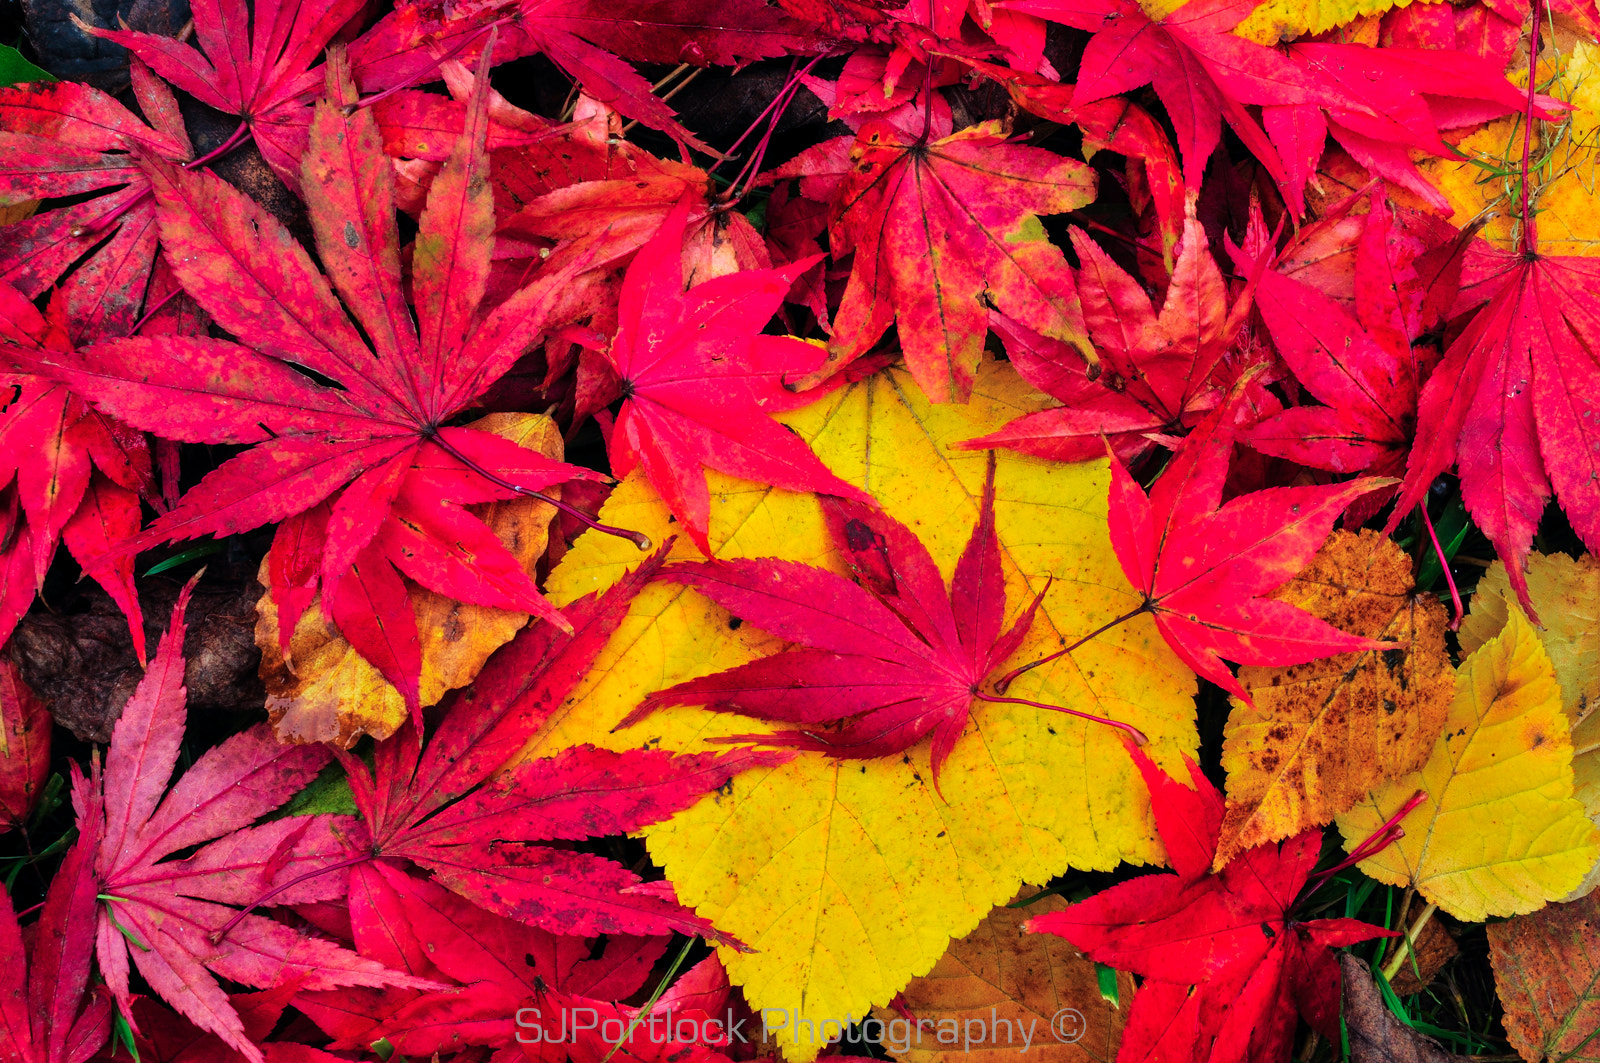 Photograph Colours of Autumn by Stephen Portlock on 500px